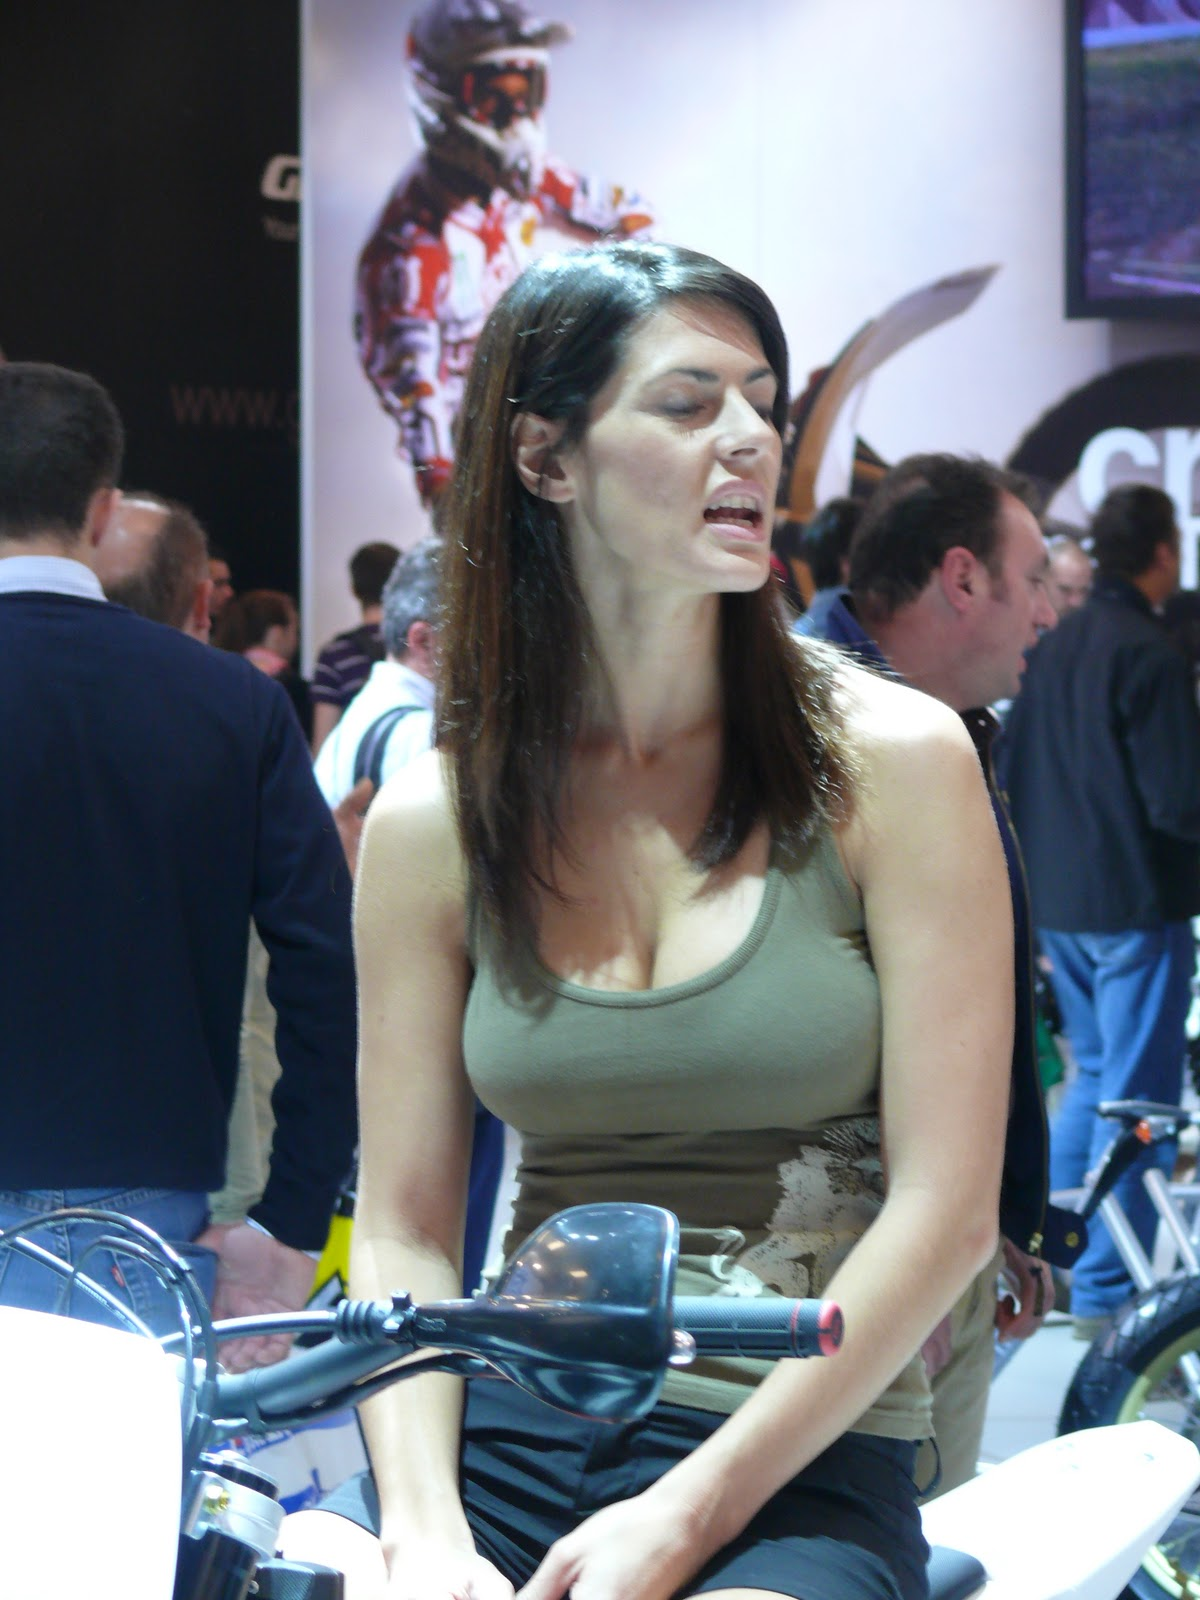 Big Breast Girls Some Candid At Auto Show-4864